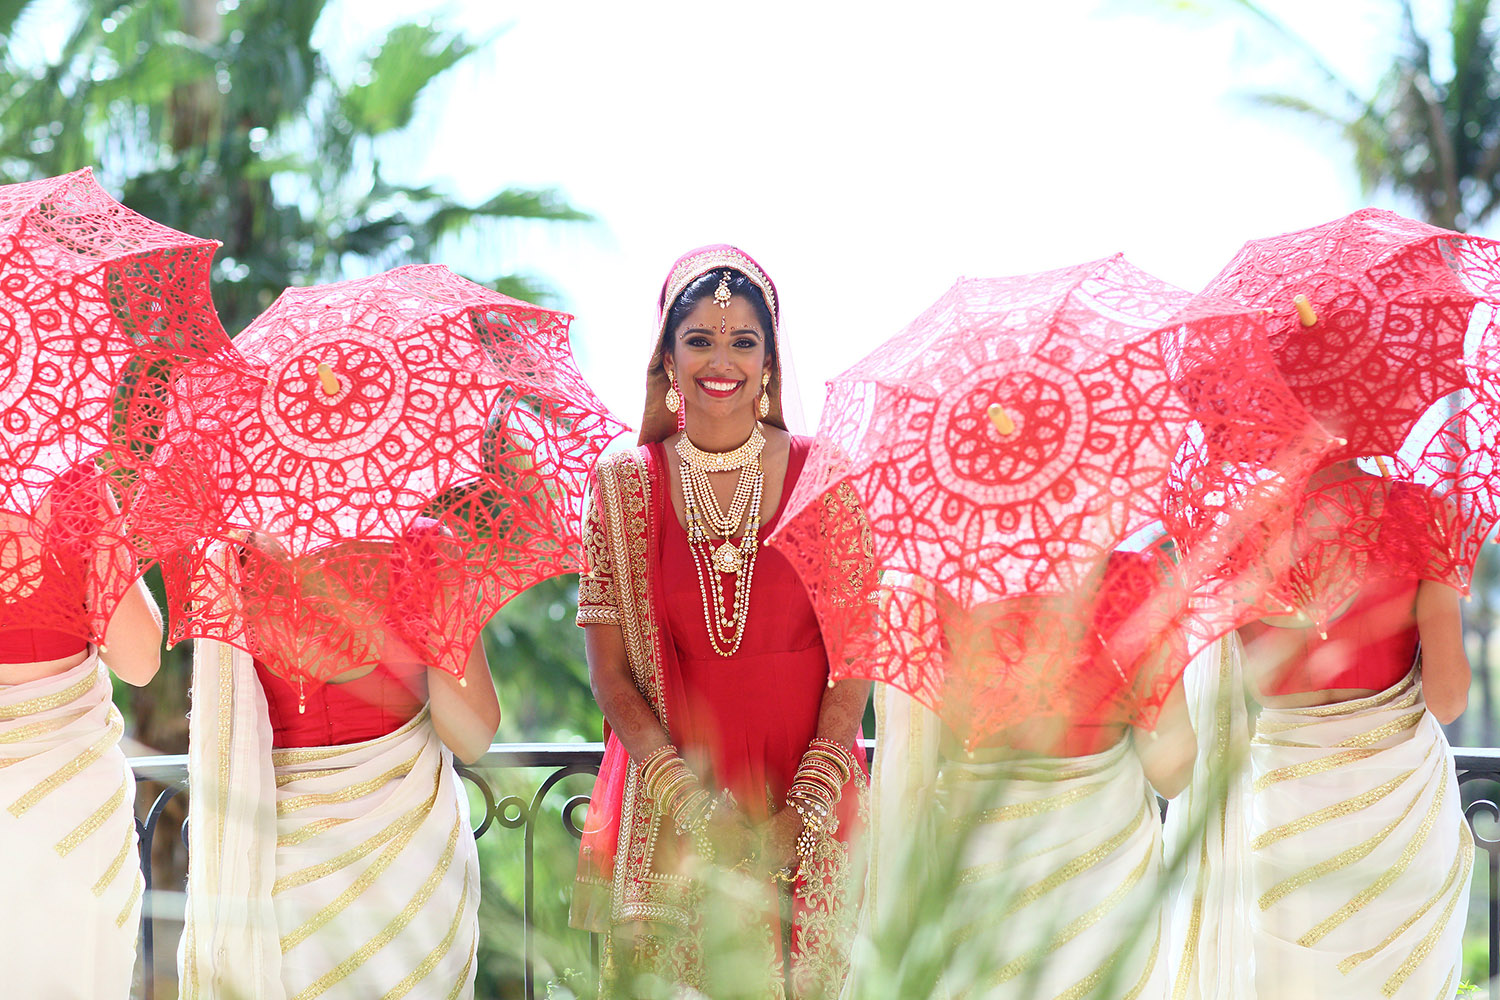 elegant-wedding-planner-chicago-south-asian-engaging-events-by-ali-10twelve